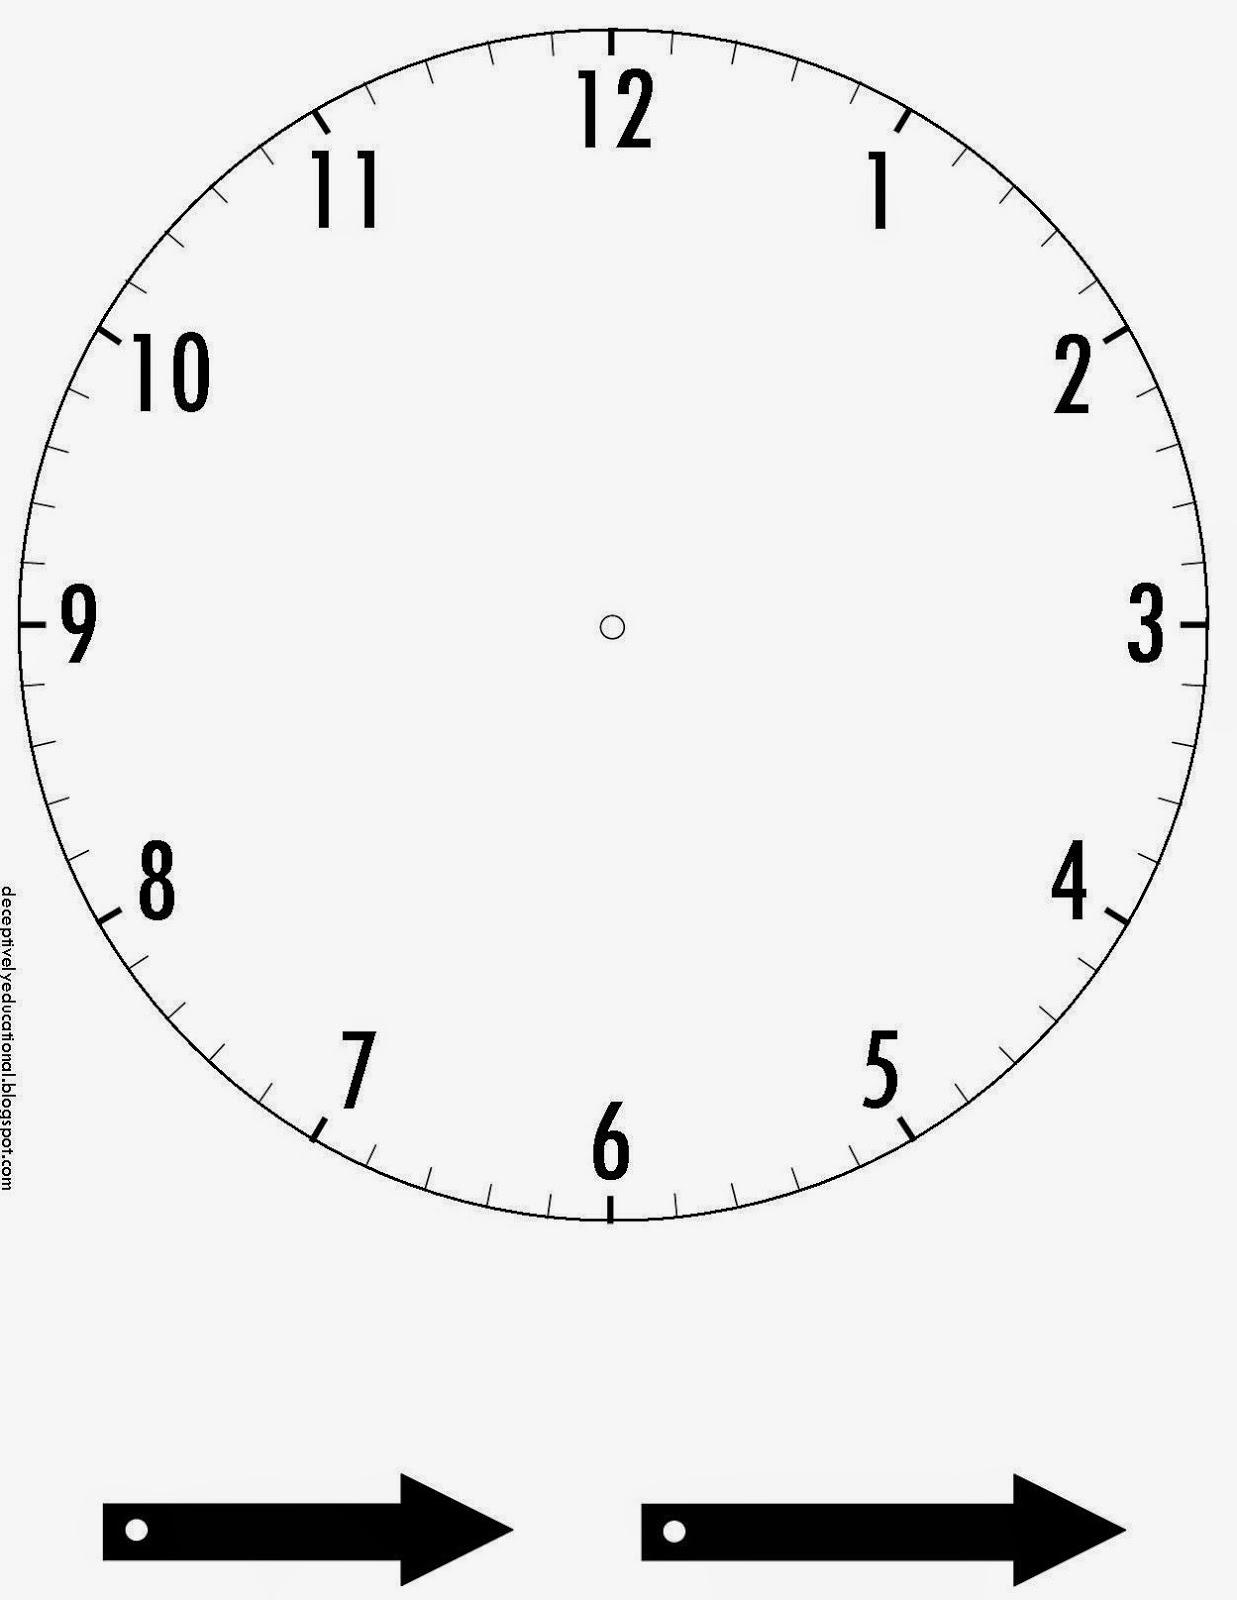 printable clock face with movable hands - Monza berglauf-verband com